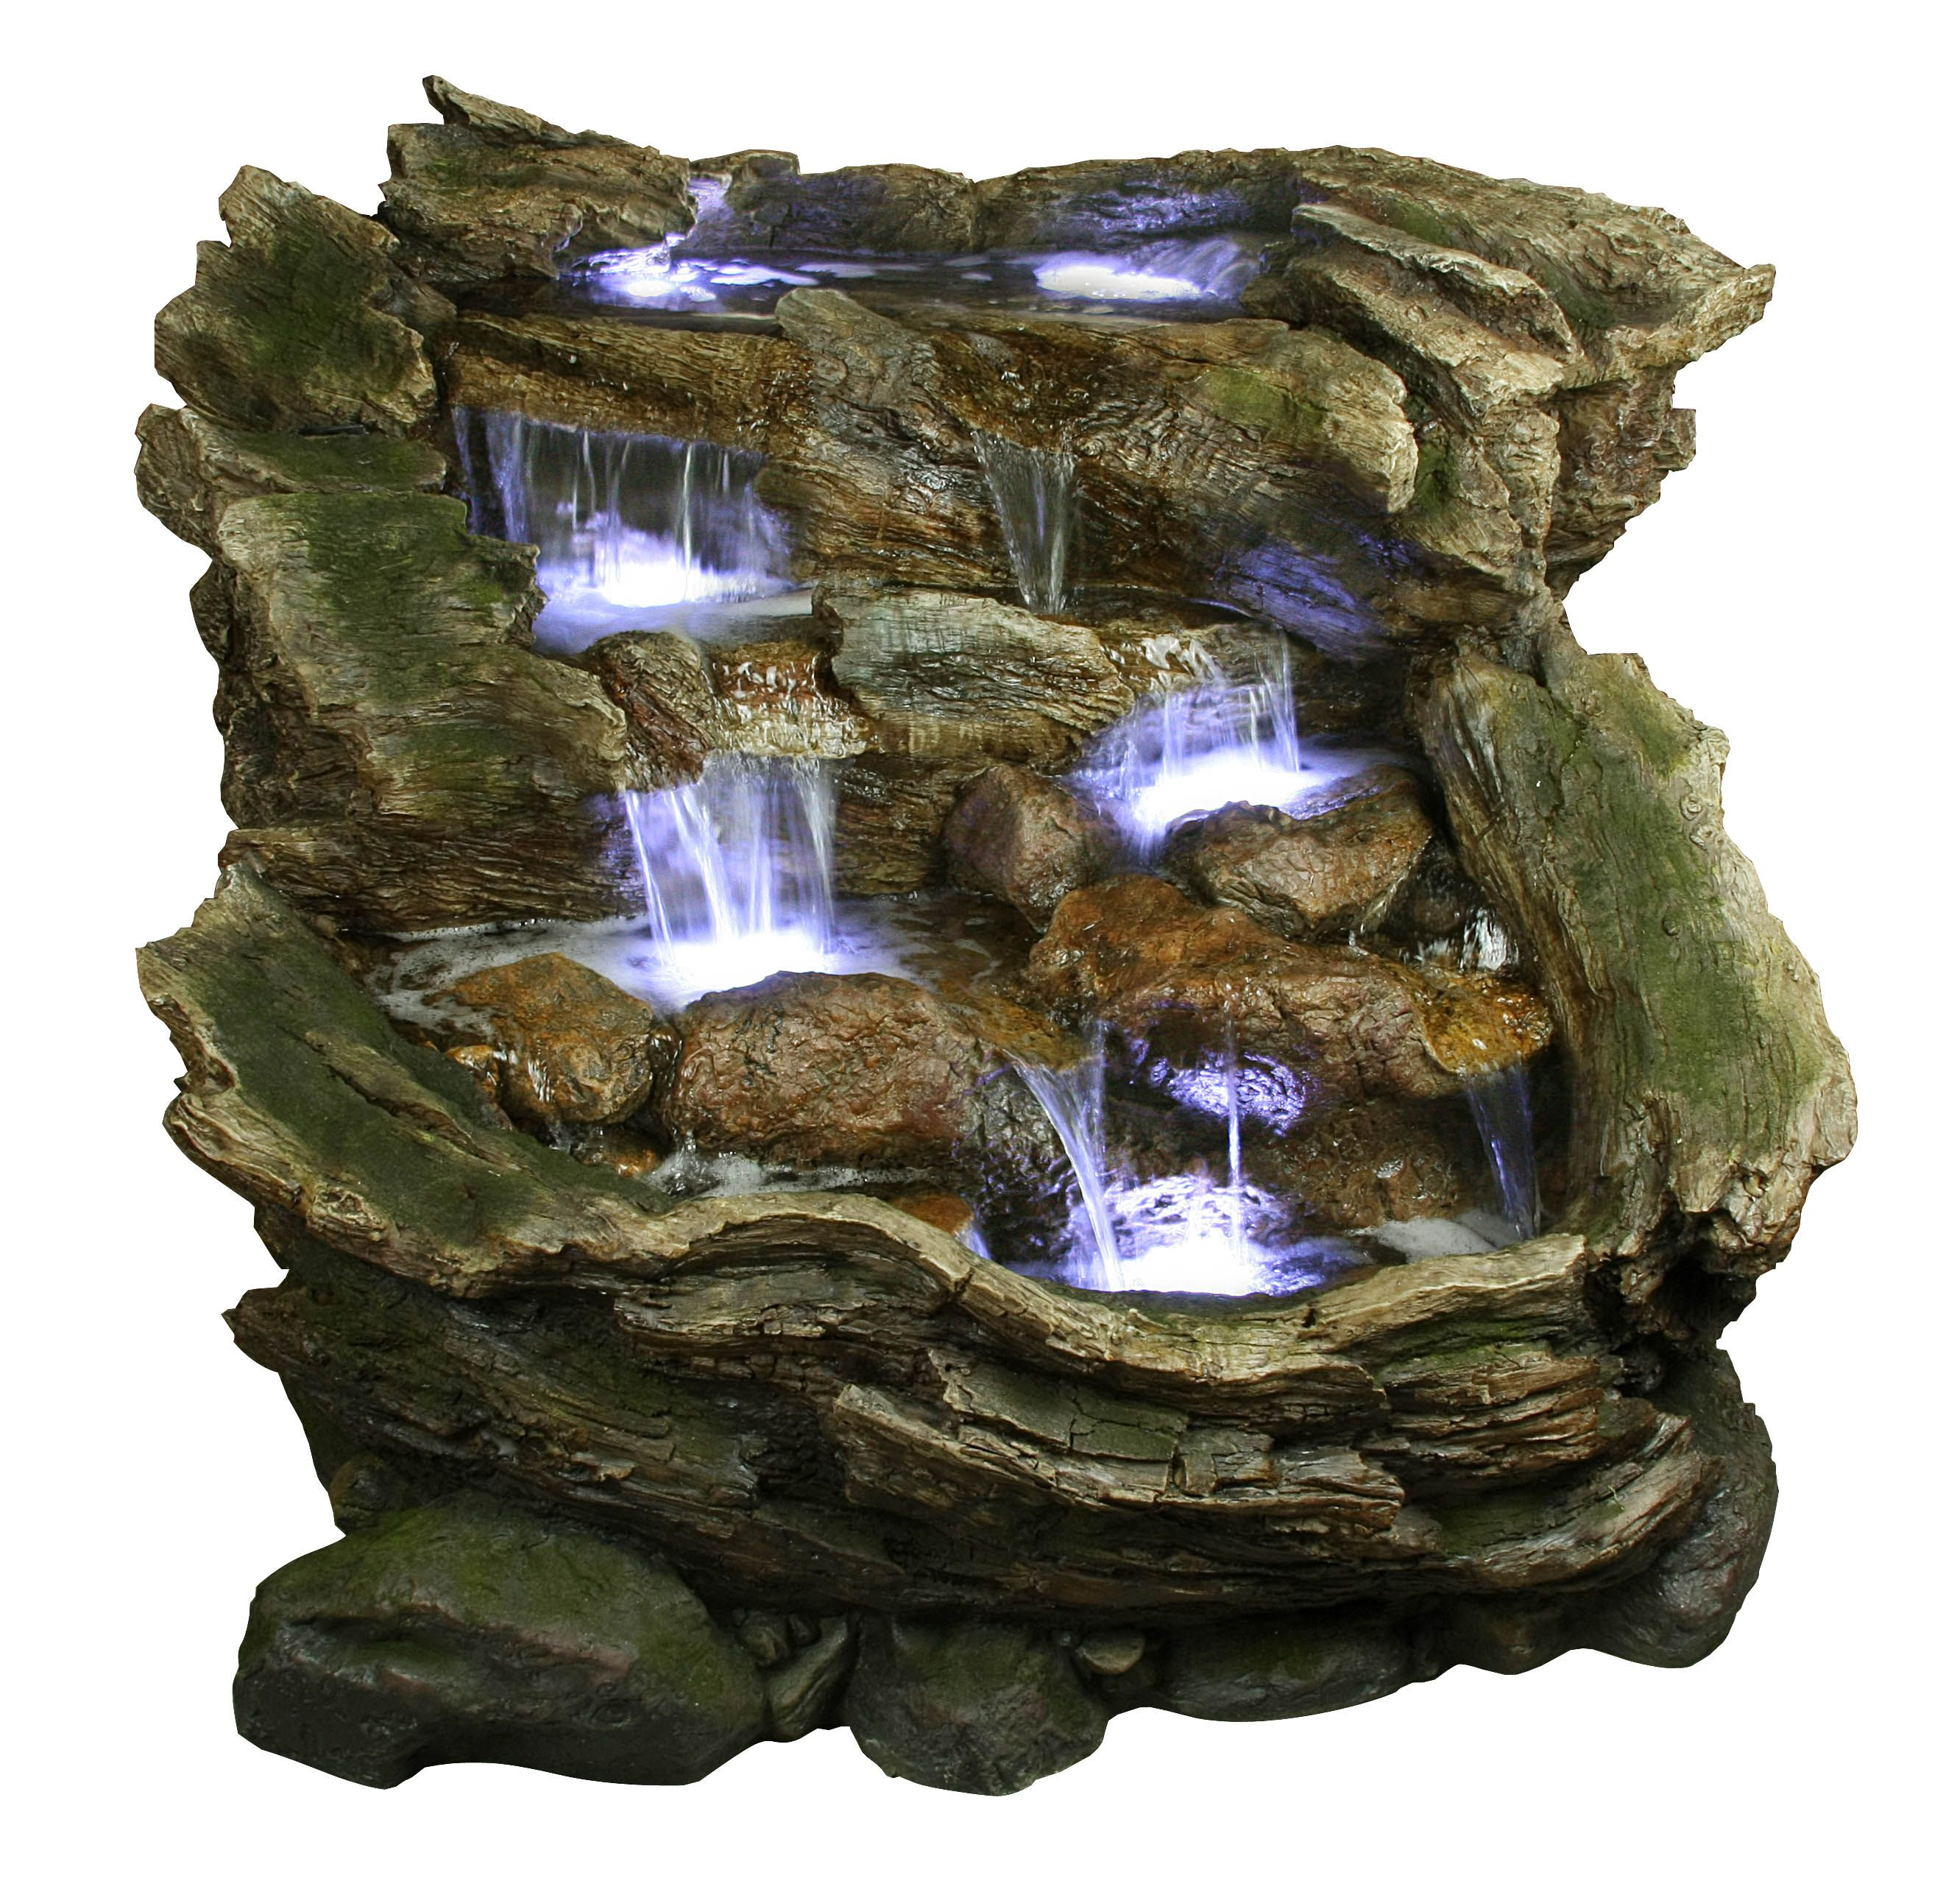 Orla Would Love A Fountain For My Room To Act As A Humidifier Fountains Outdoor Indoor Fountains Indoor Water Fountains